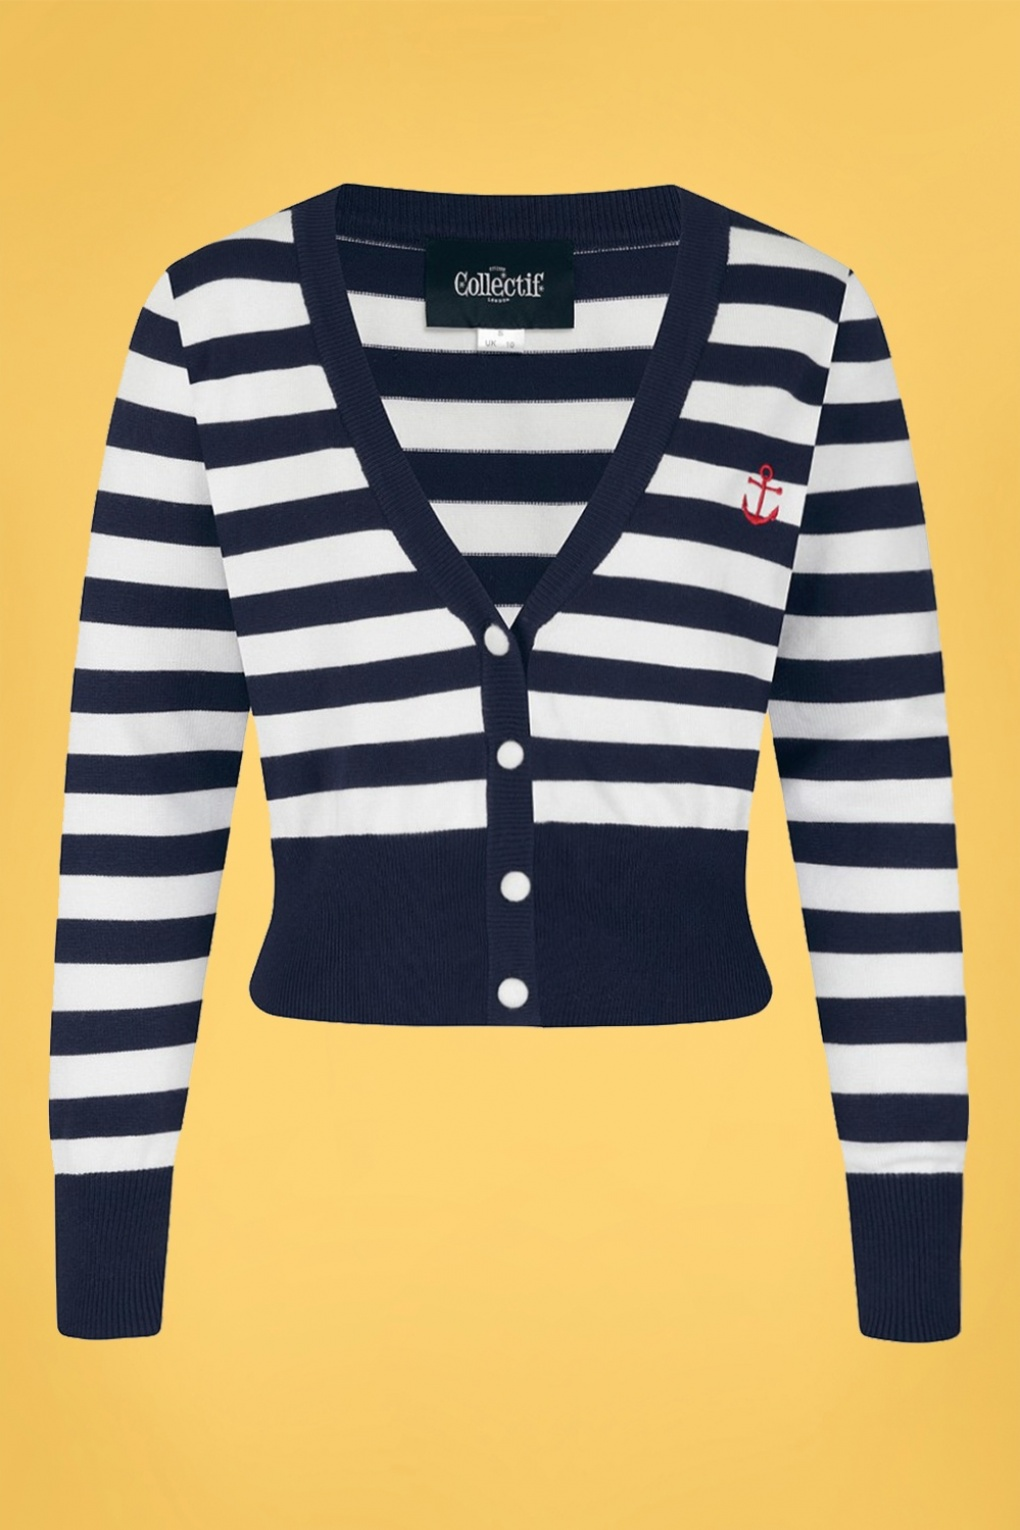 Sailor Dresses, Nautical Theme Dress, WW2 Dresses 50s Purdy Nautical Striped Cardigan in Navy and White £34.54 AT vintagedancer.com